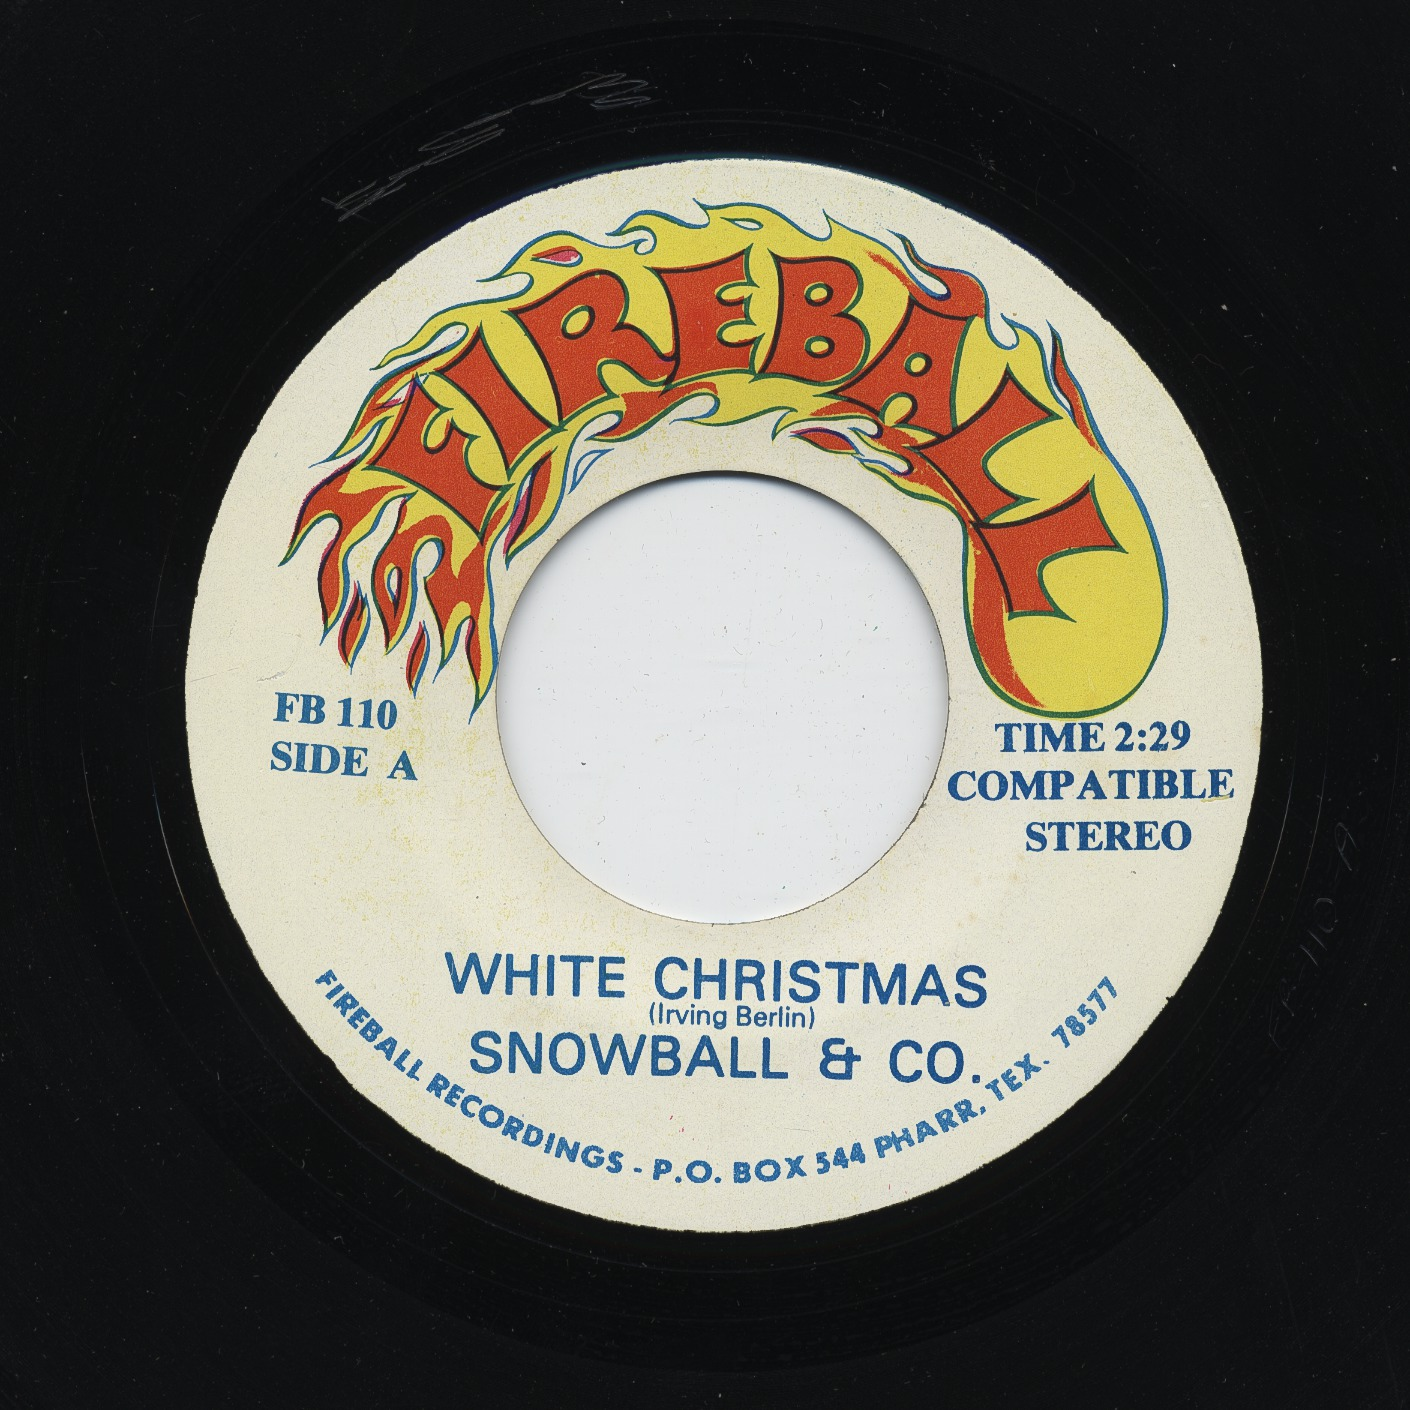 White Christmas | Frontera Project